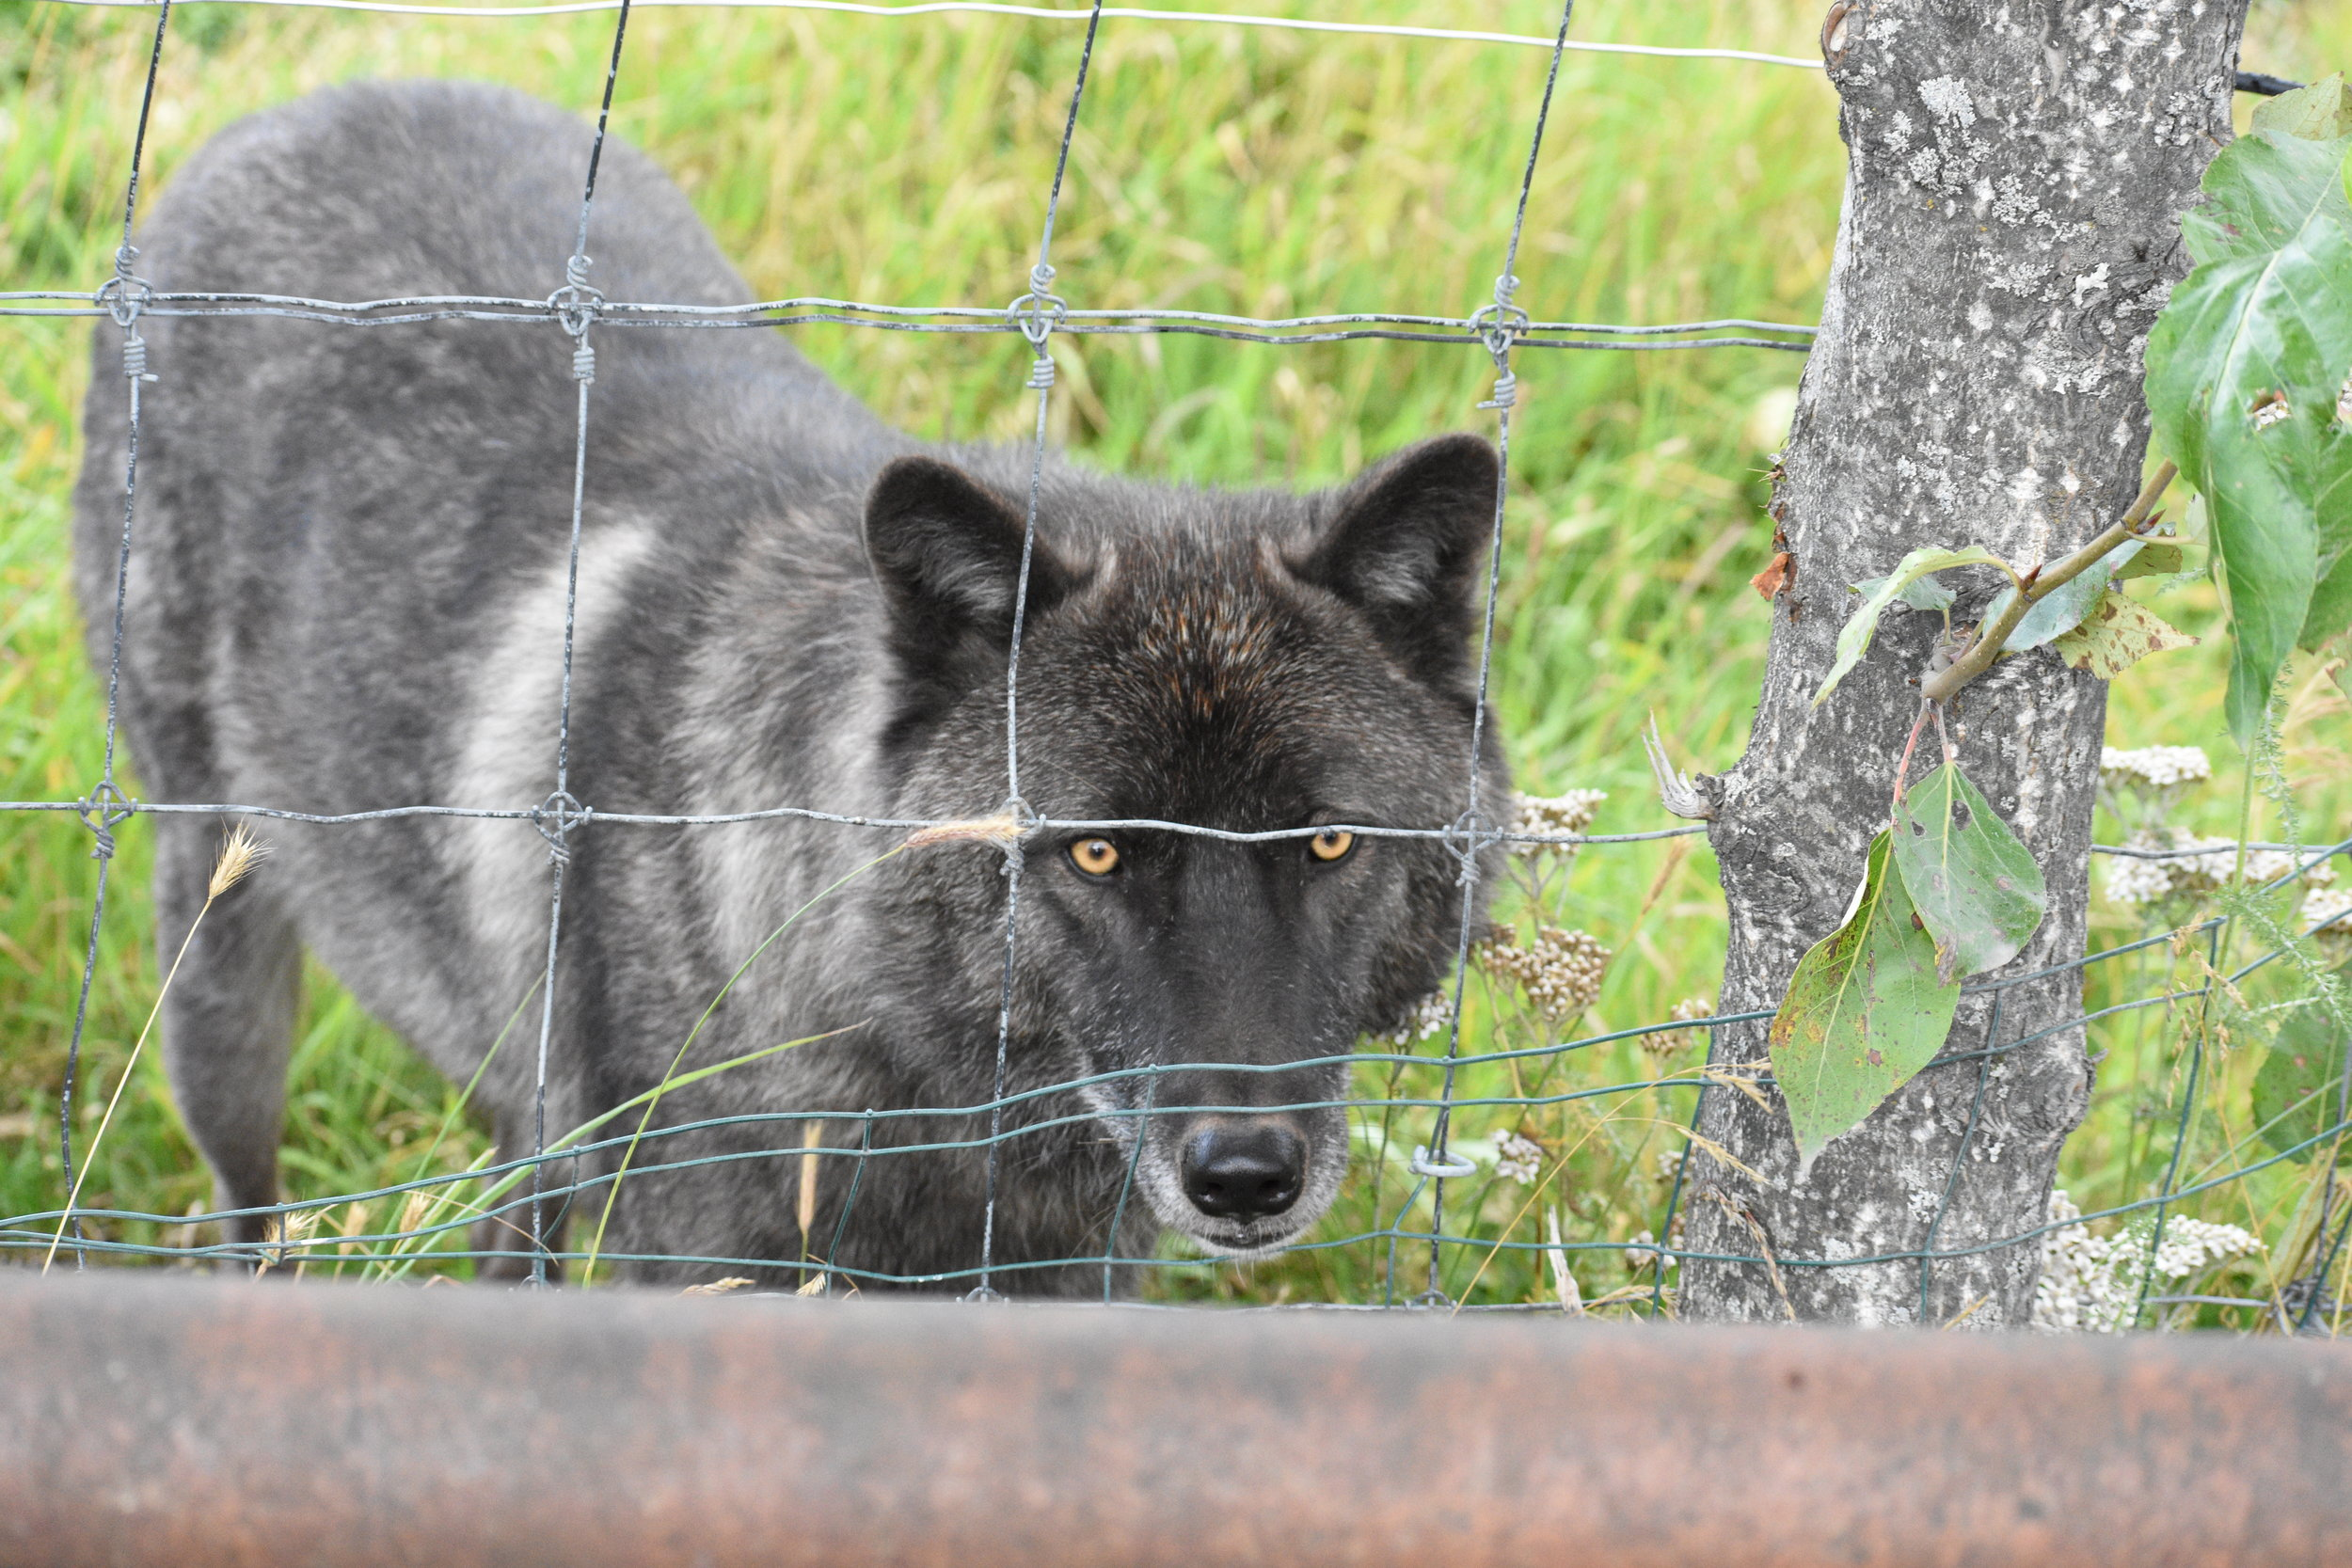 Not all species of wolves at the Alaska Wildlife Conservation Center are native to Alaska, but Lothario a black-phase Gray Wolf has ancestral ties to Alaska and gives a stunning up-close view of these majestic animals.